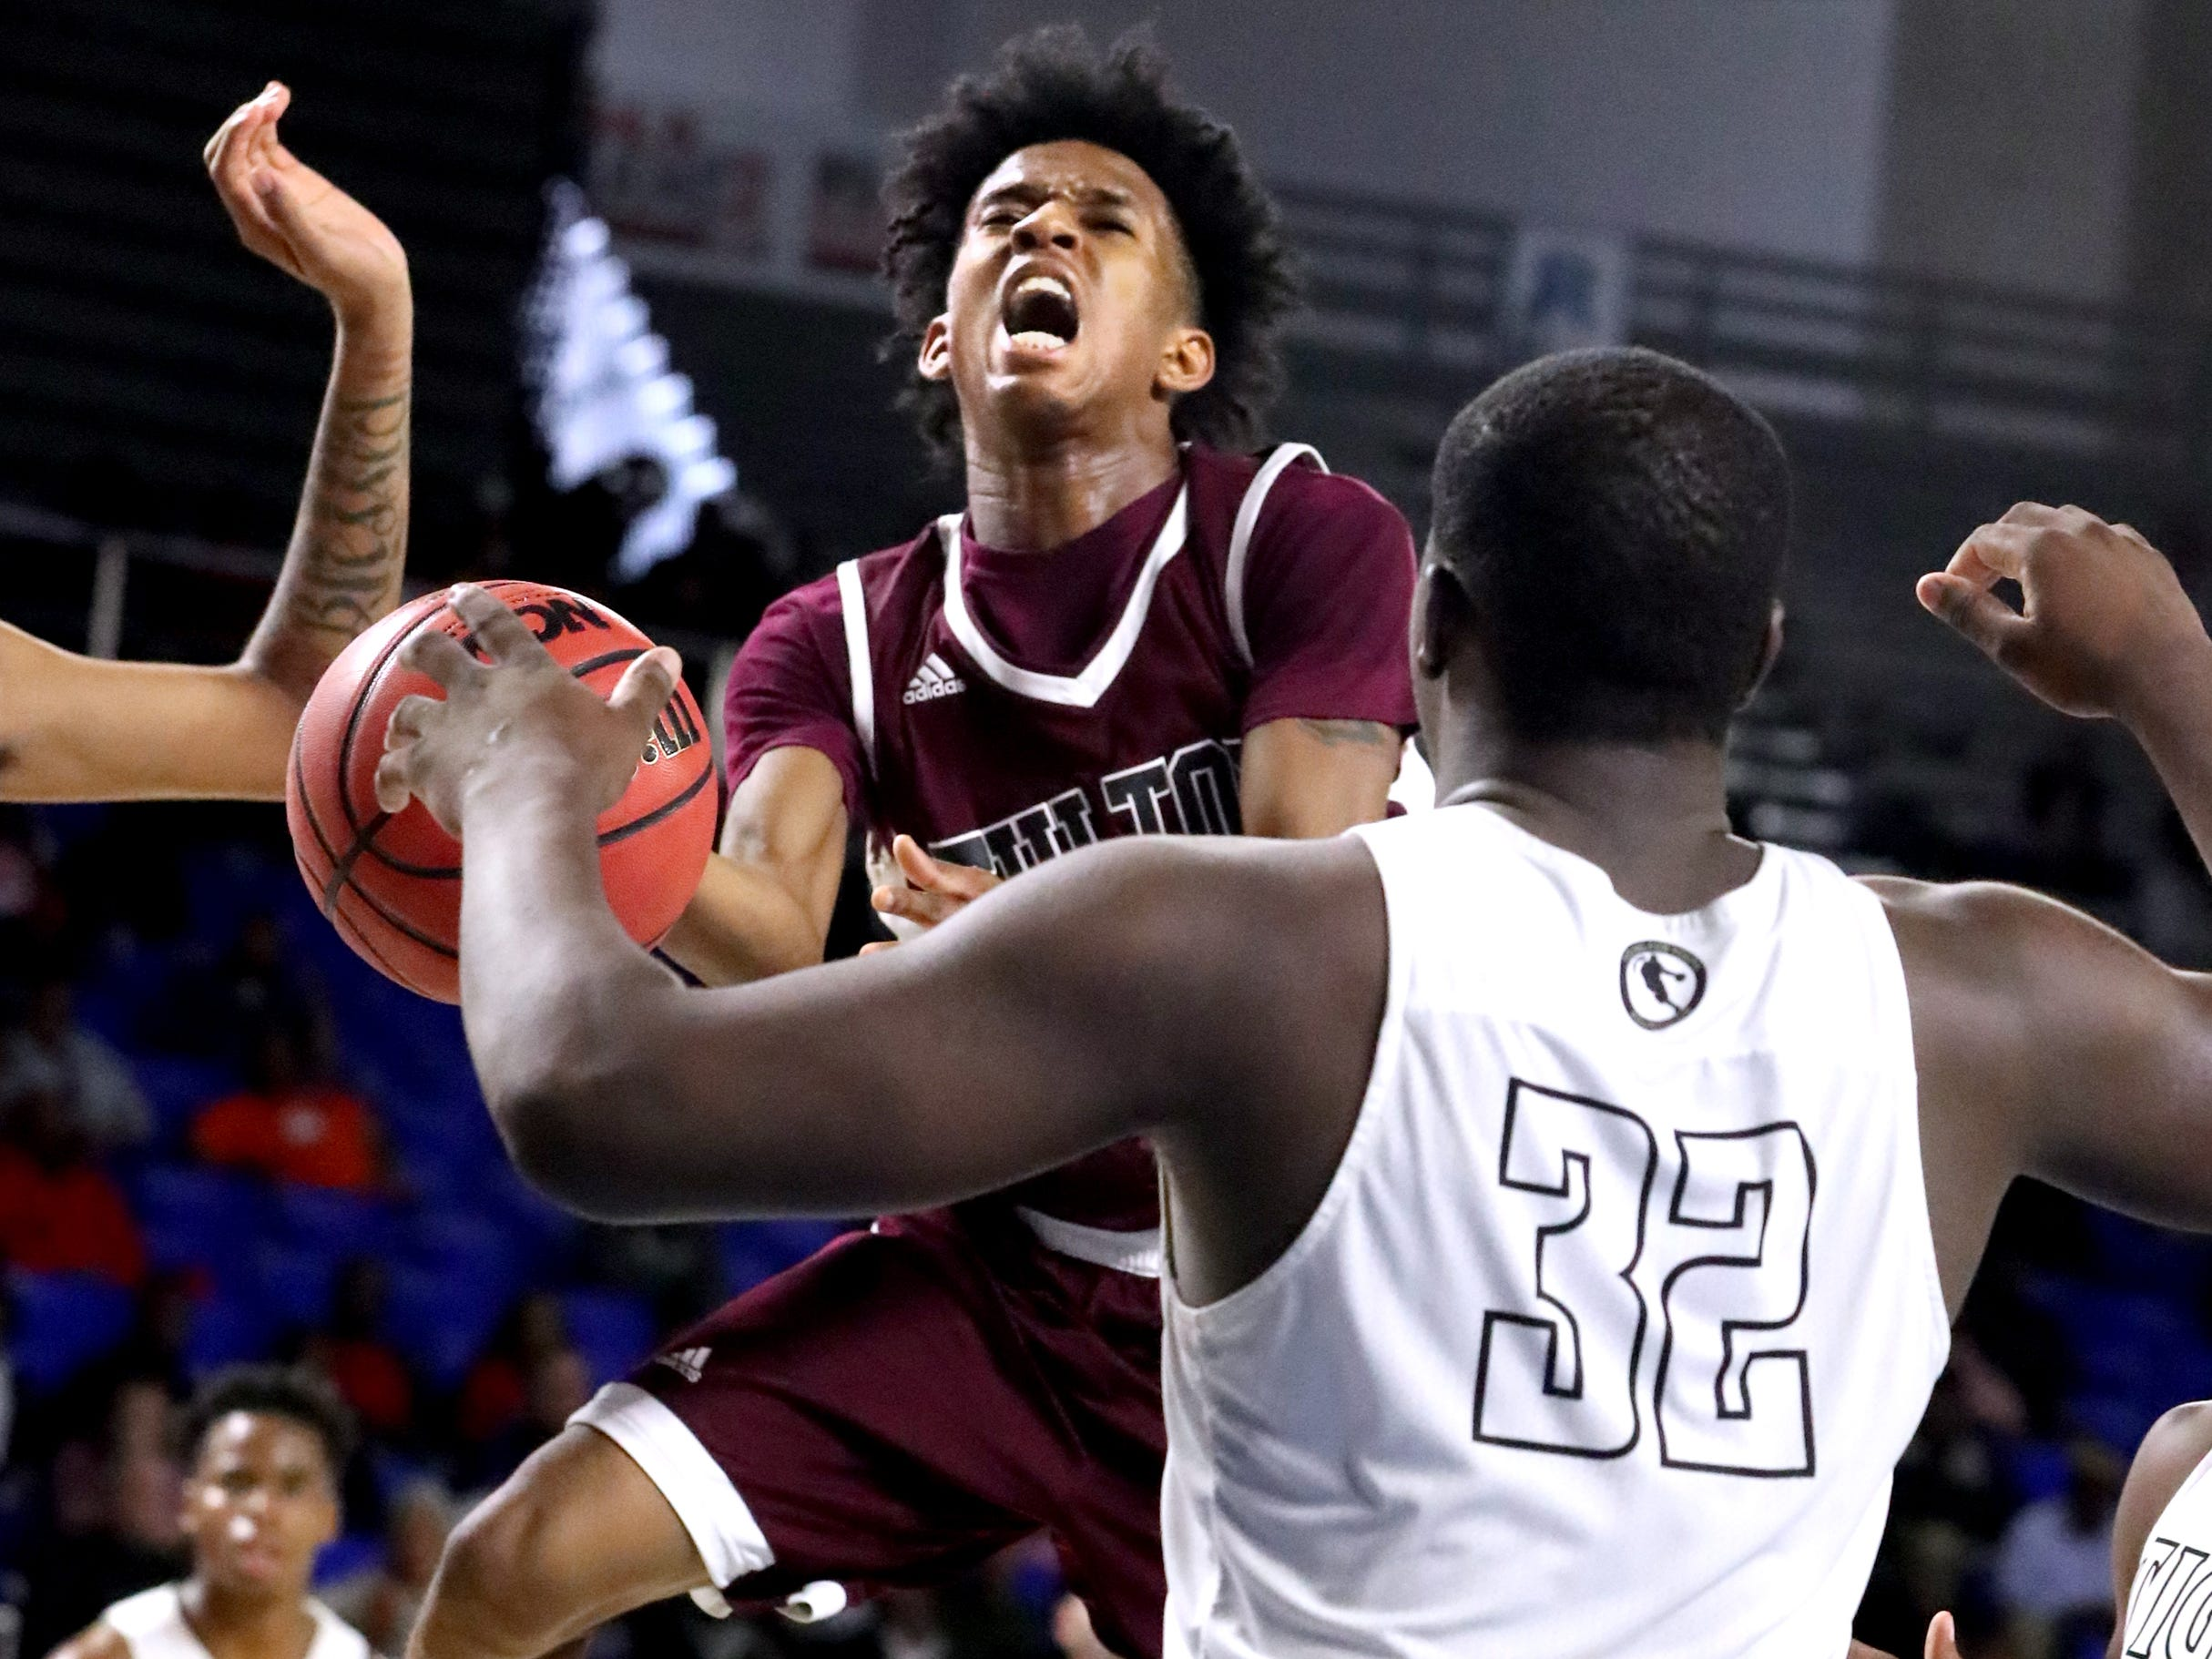 Fulton's Edward Lacy (4) goes up for a shot asMitchell's Cameron Powers (32) guards him during the quarterfinal round of the TSSAA Class AA Boys State Tournament, on Wednesday, March 13, 2019, at Murphy Center in Murfreesboro, Tenn.